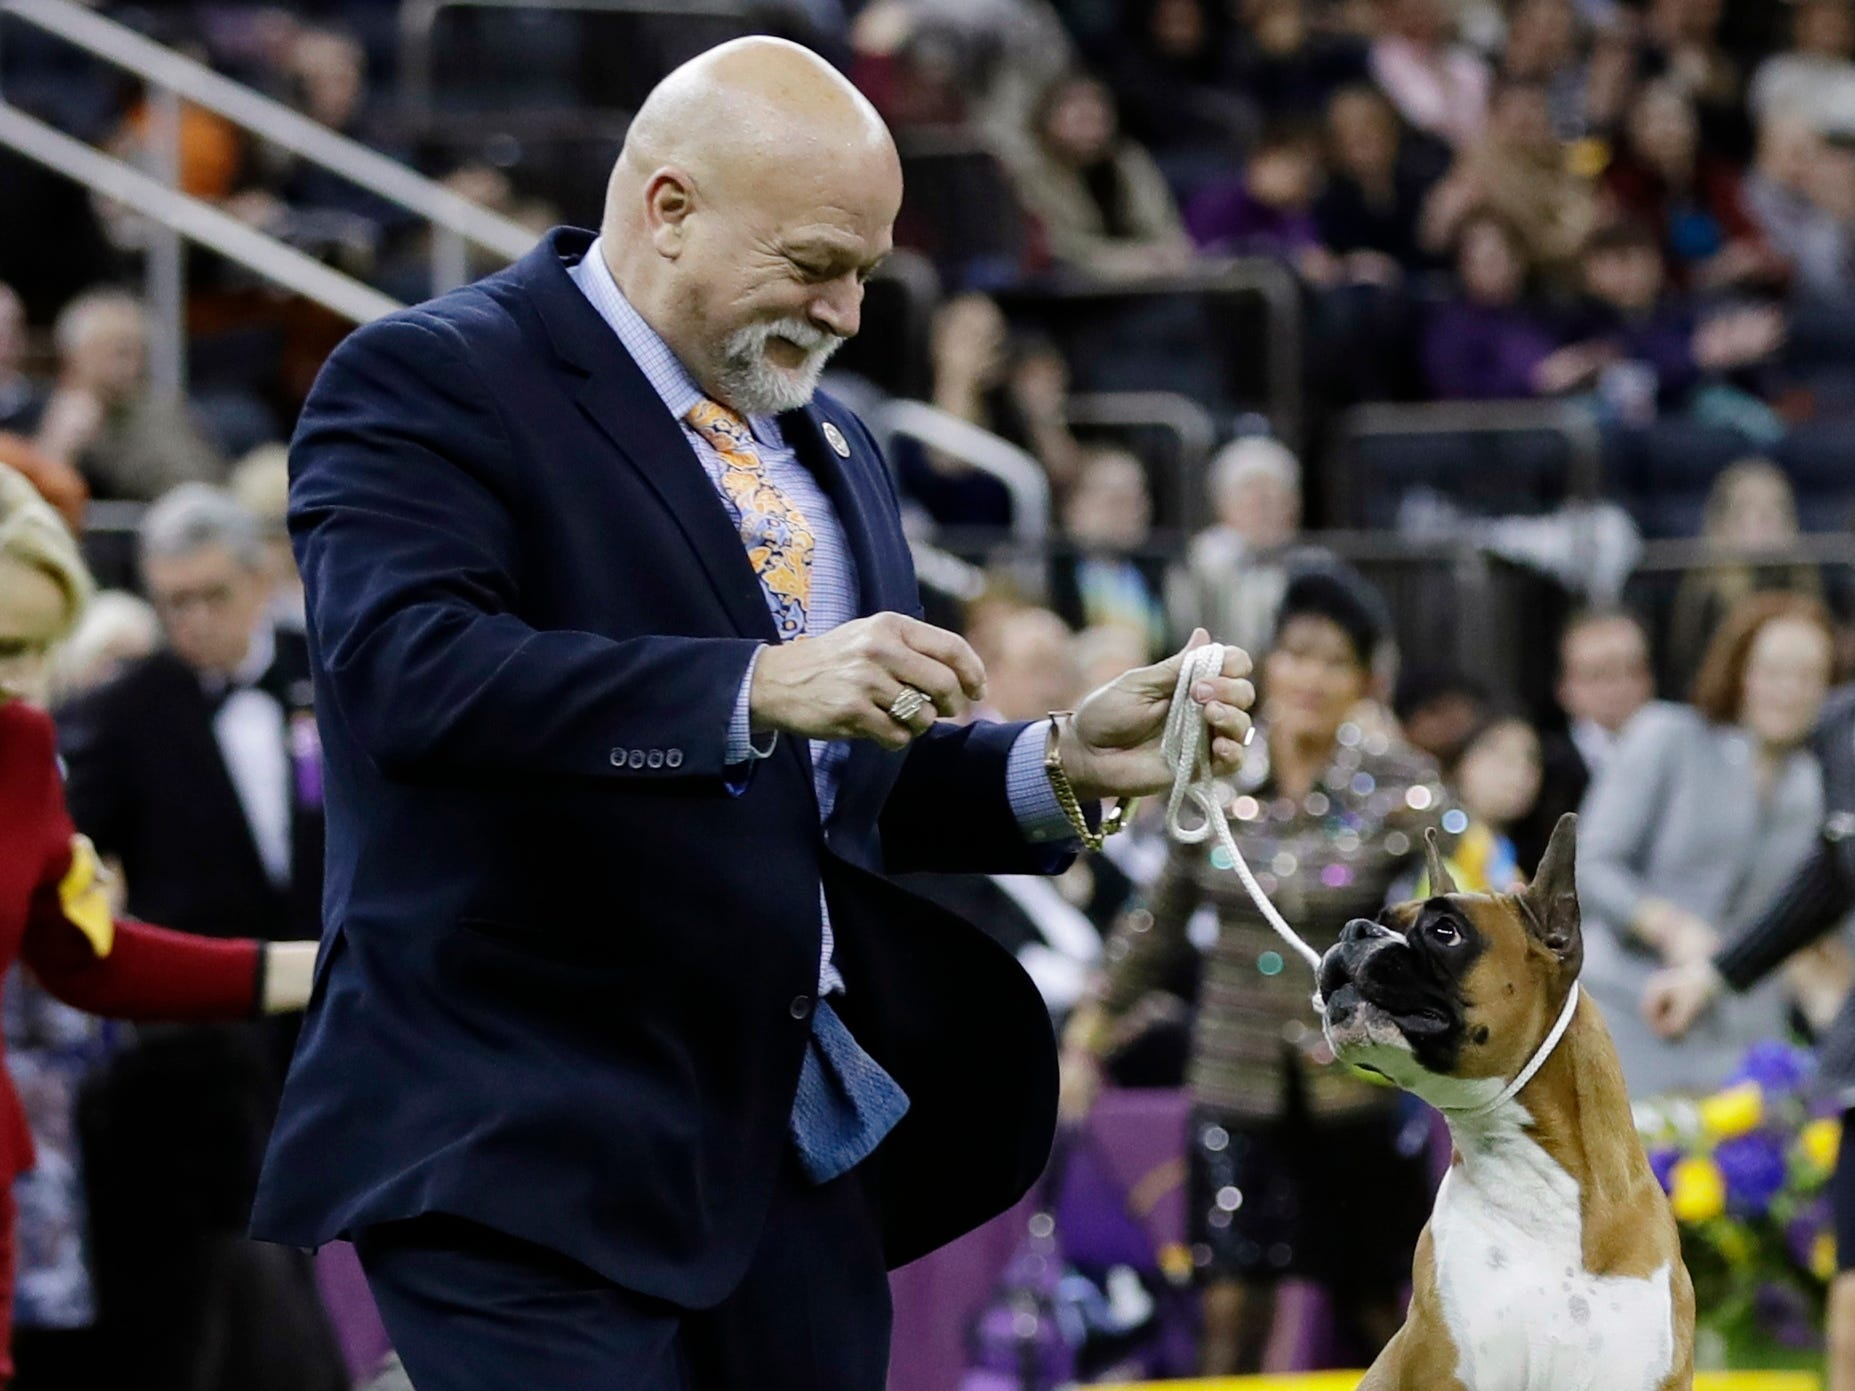 Michael Sheppard handles Wilma, a boxer, in the working group at the 143rd Westminster Kennel Club Dog Show.